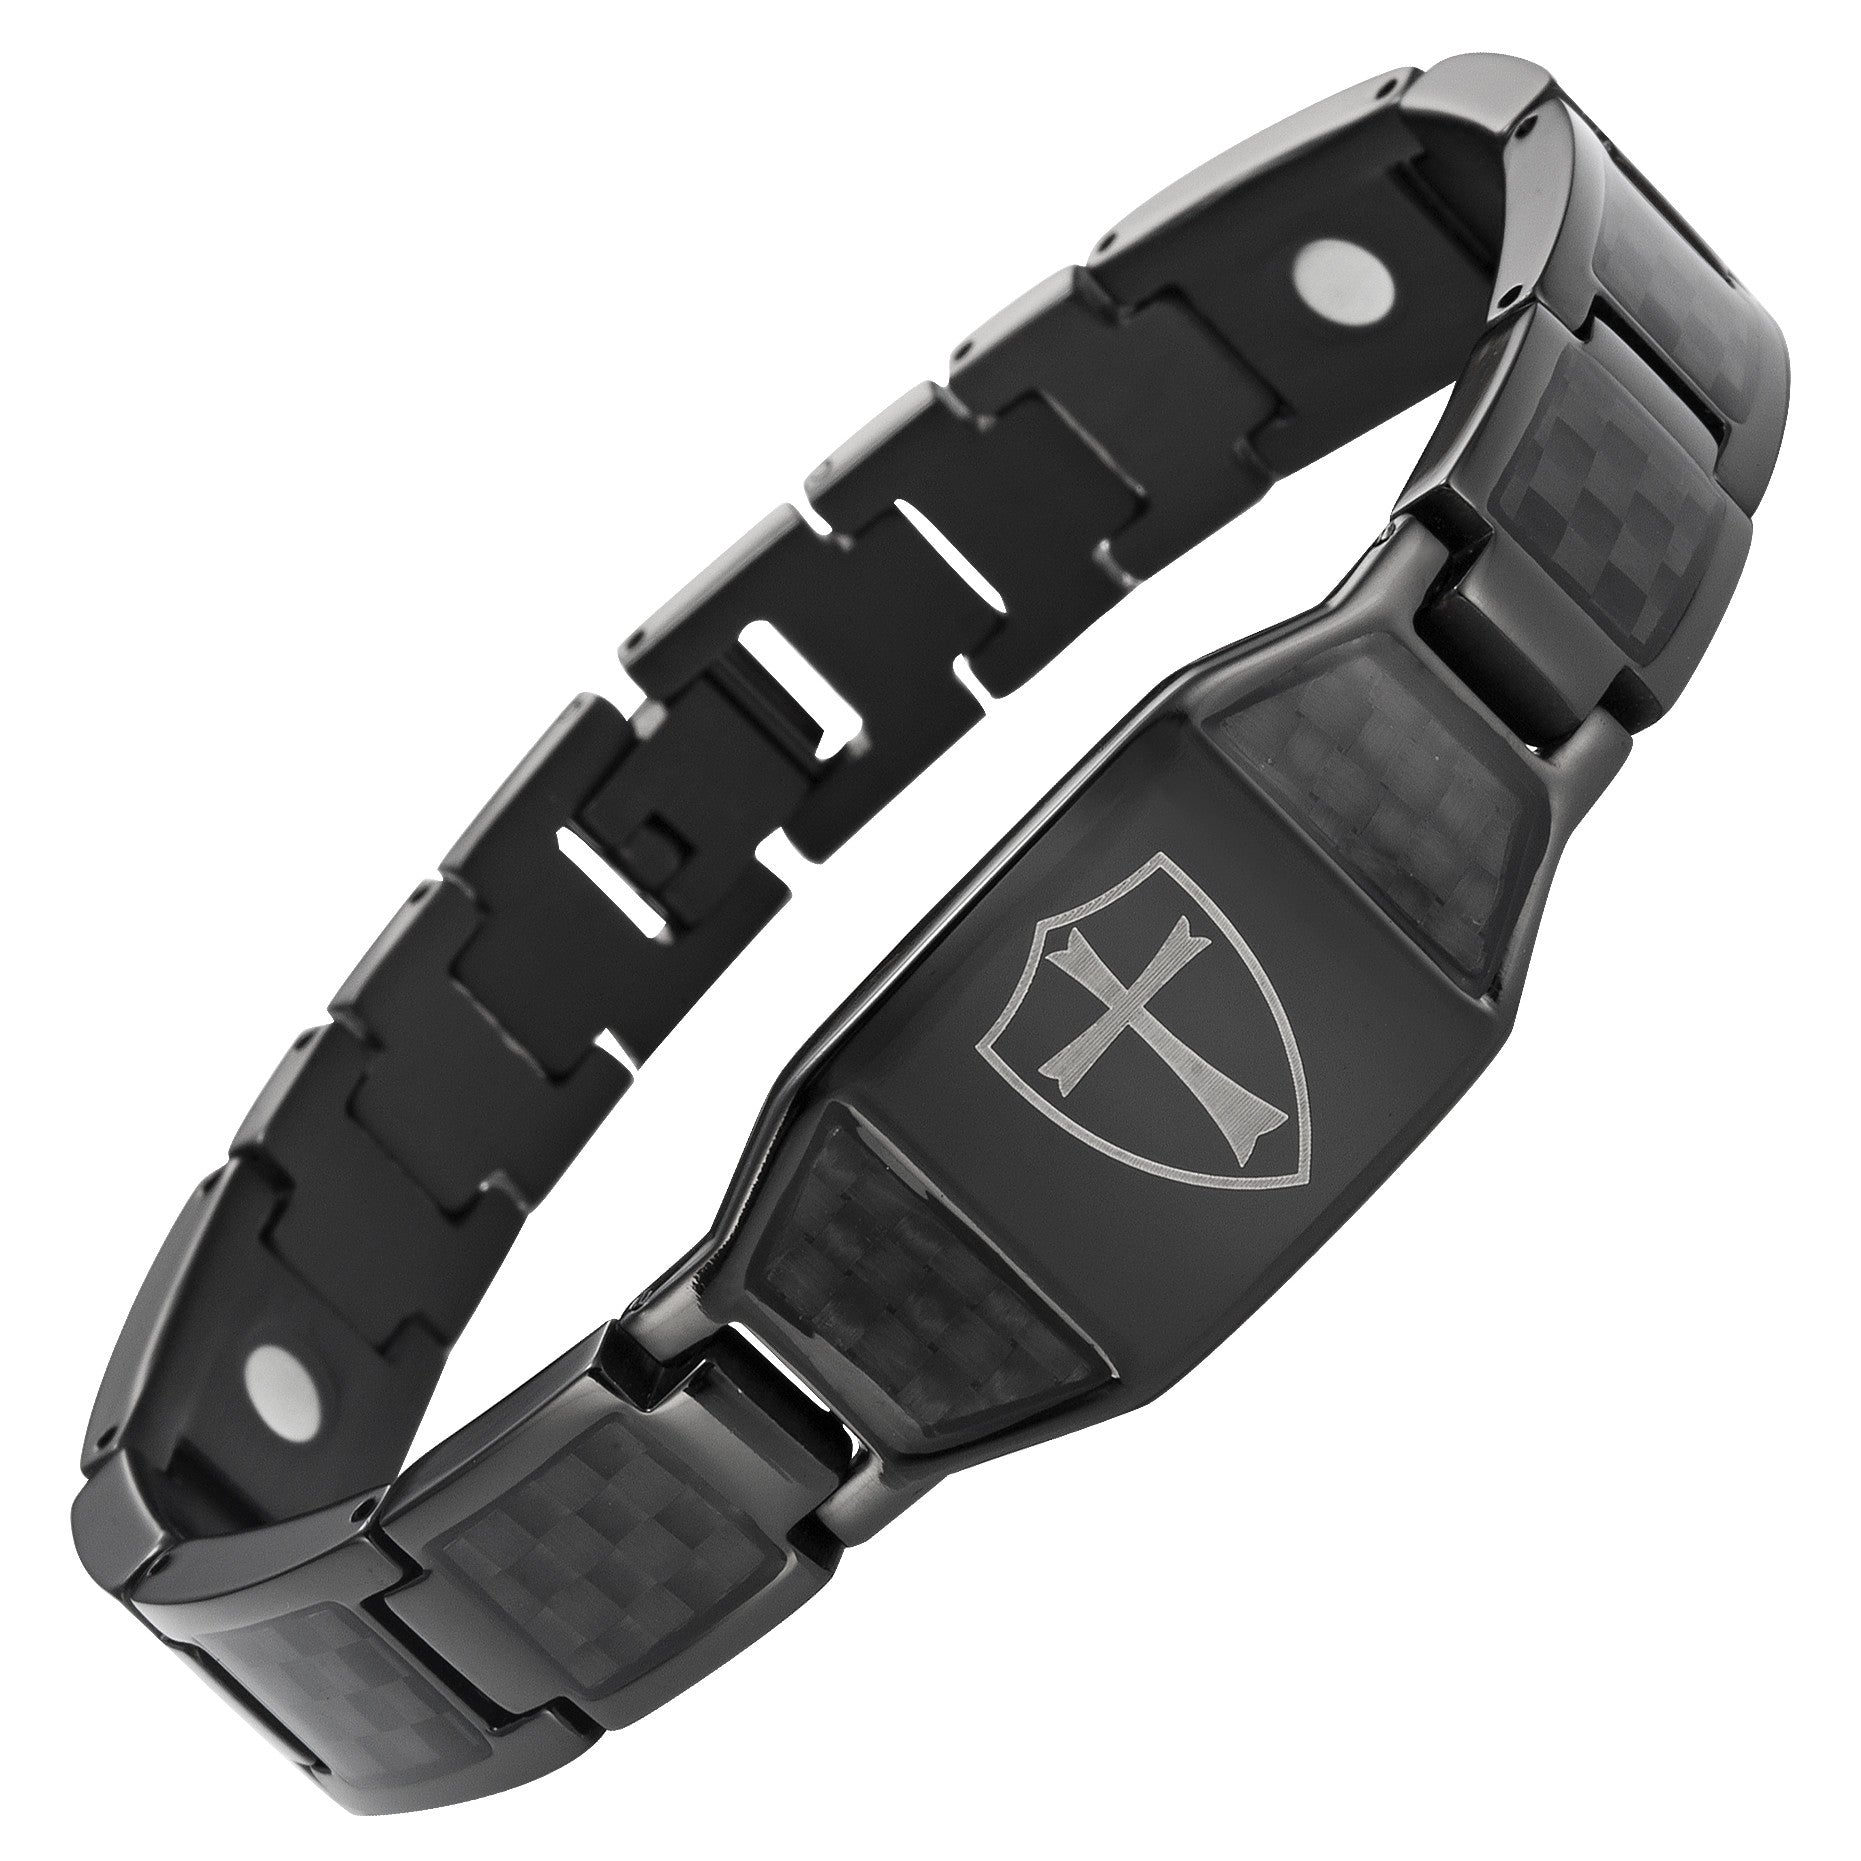 Black Titanium Bracelet with Black Carbon Fiber Knights Templar Cross Shield